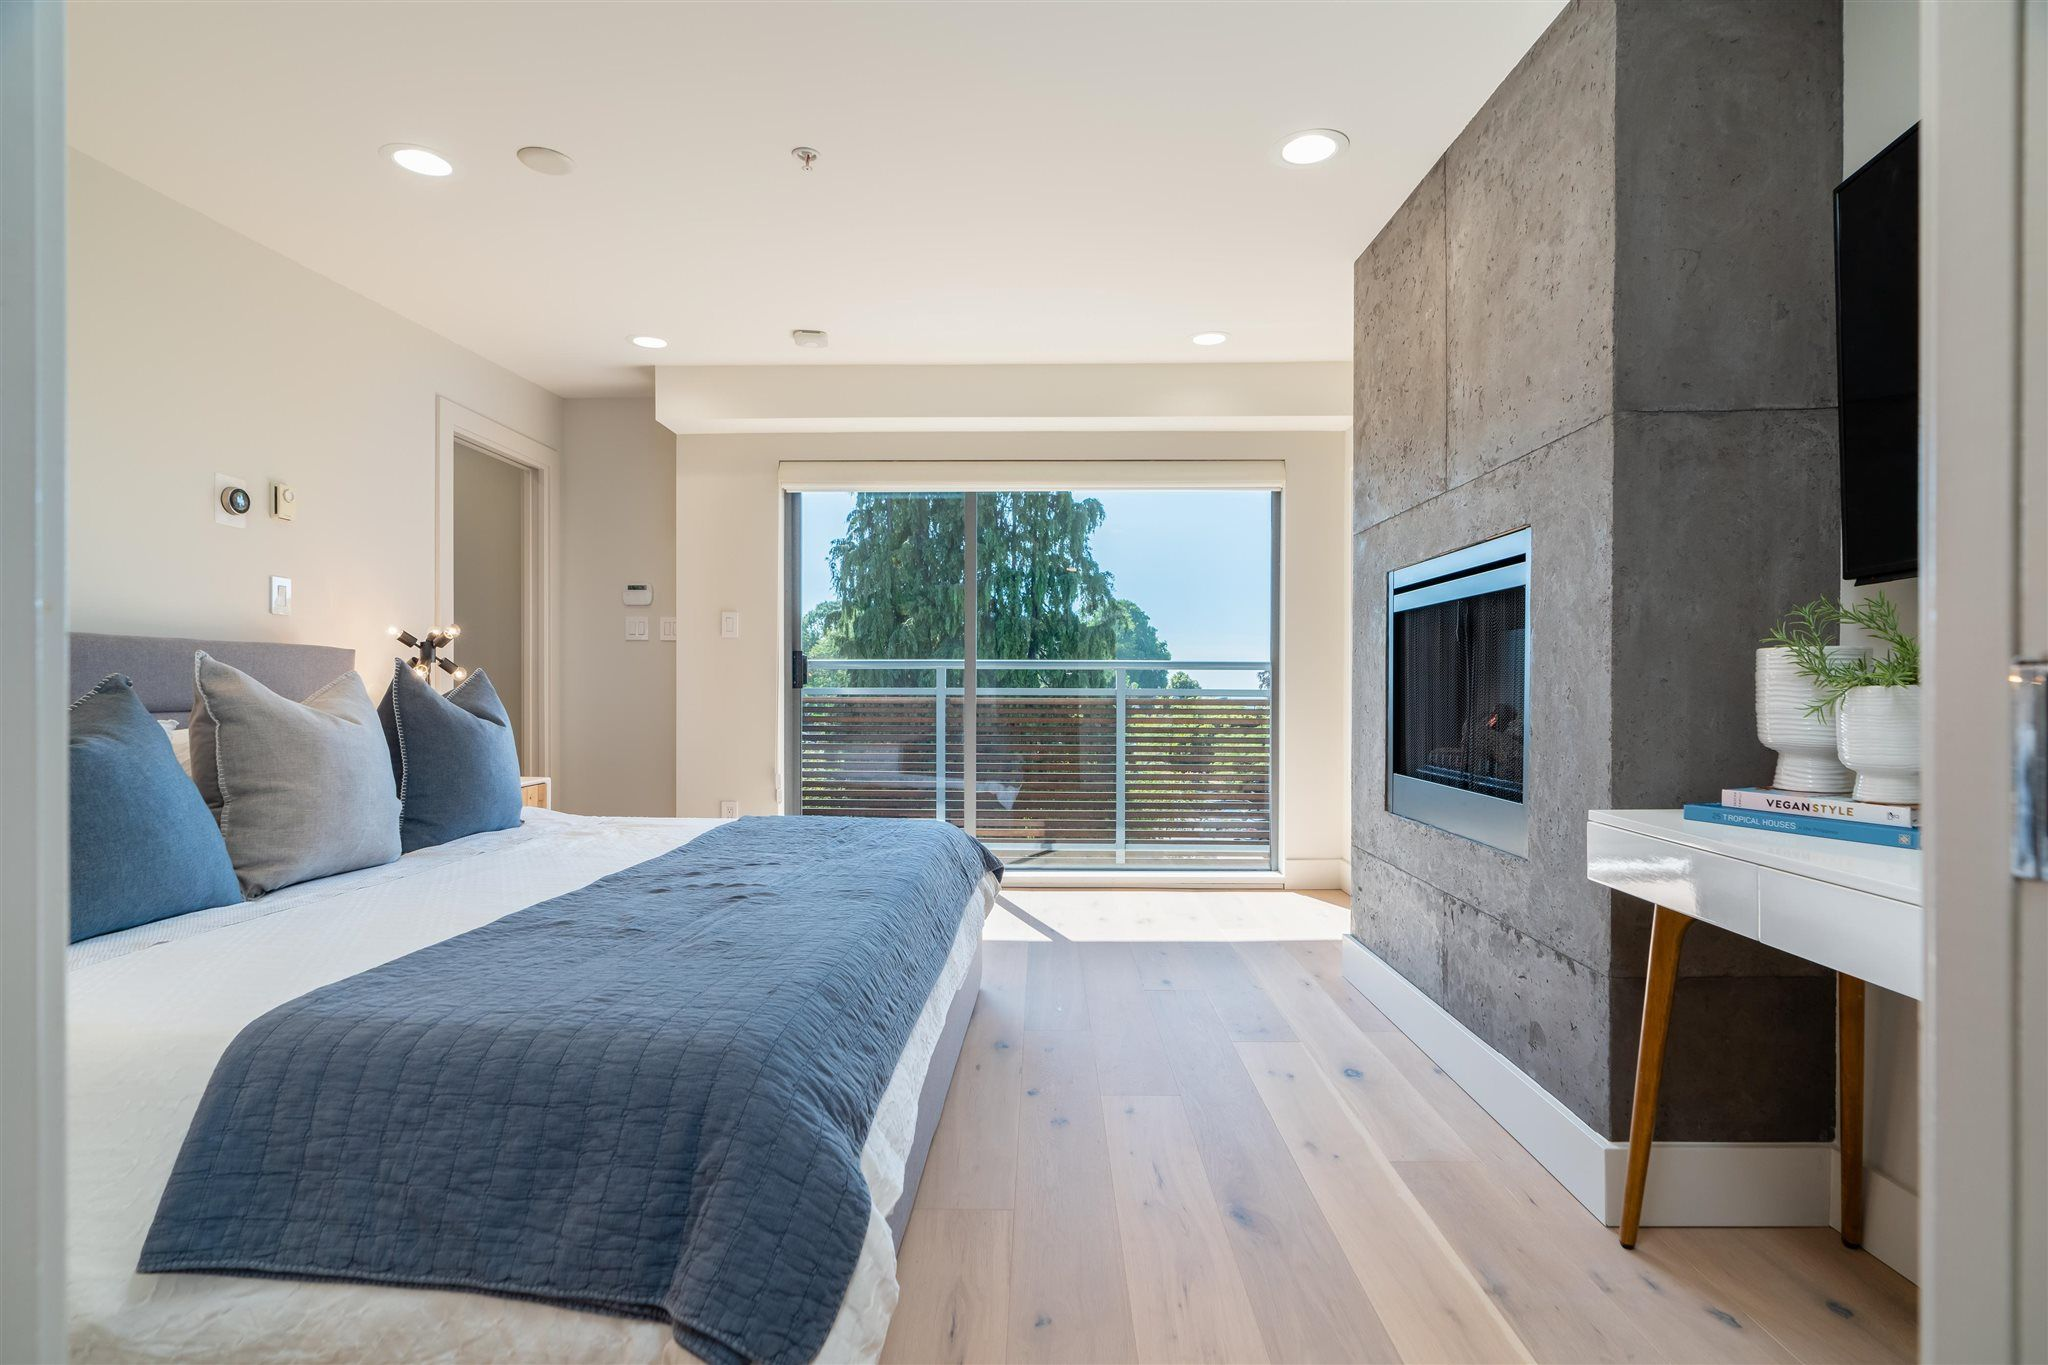 Main Photo: 1432 ARBUTUS STREET in Vancouver: Kitsilano Townhouse for sale (Vancouver West)  : MLS®# R2602268